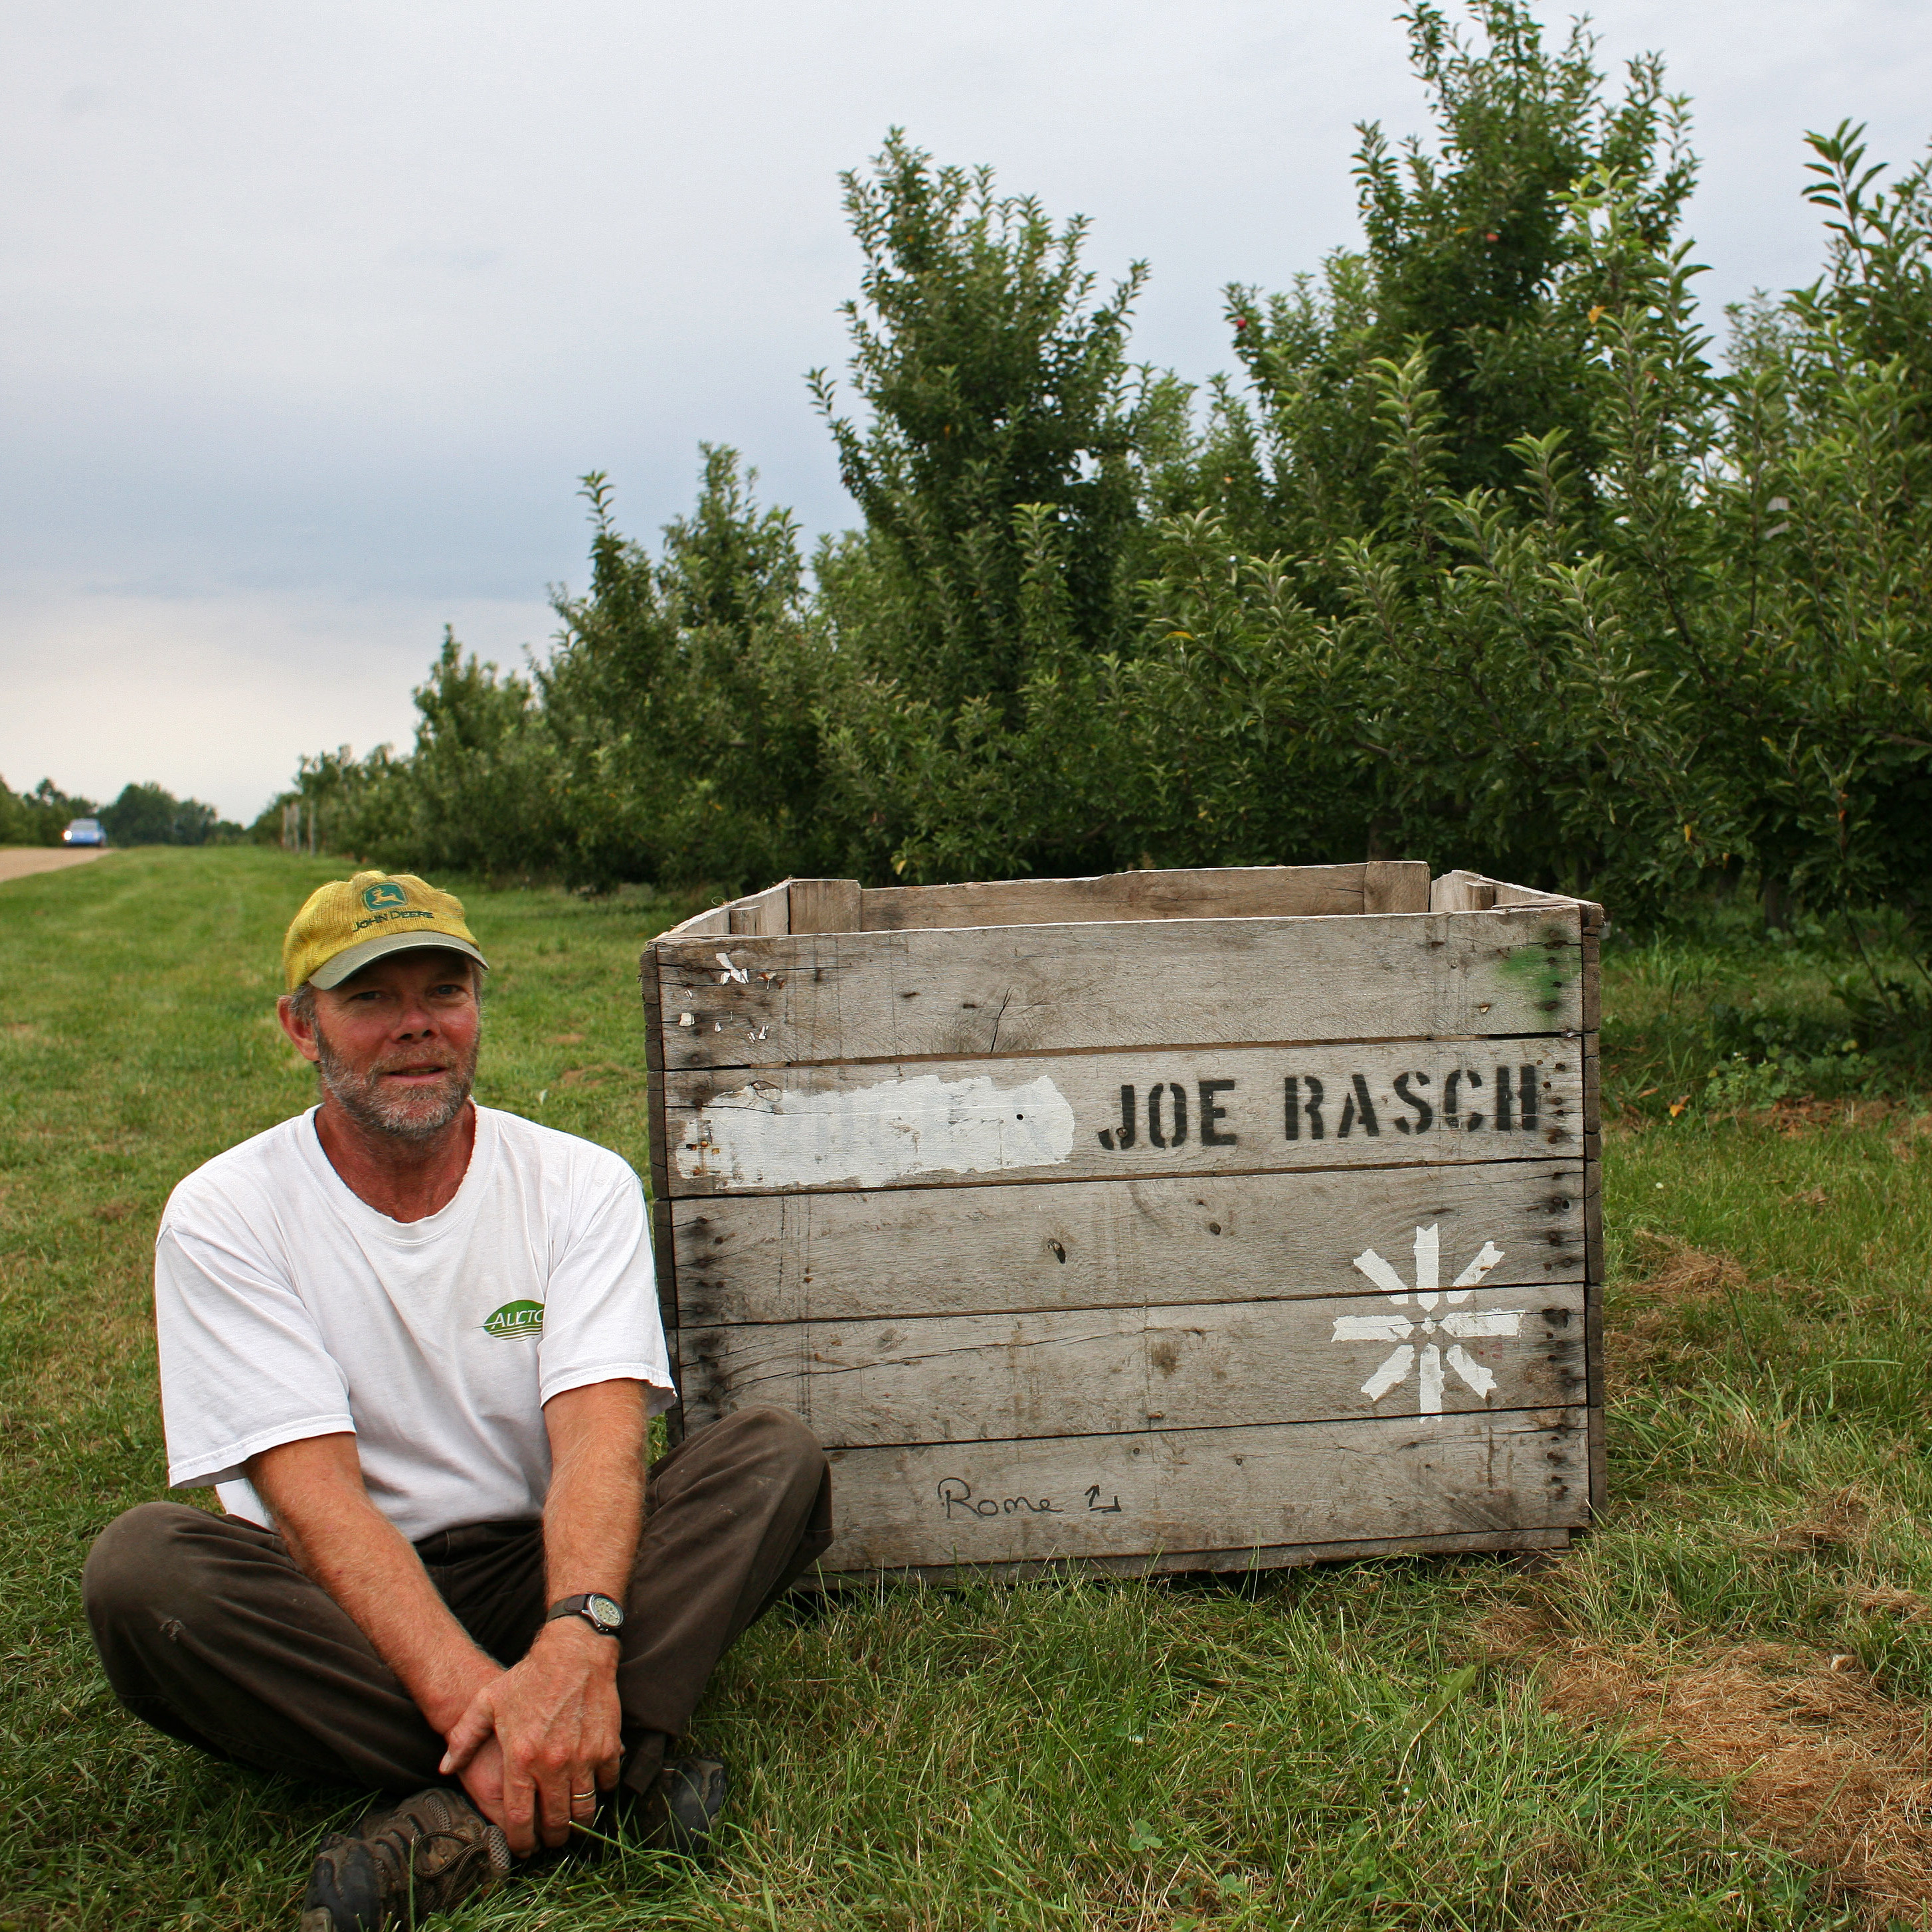 Joe Rasch has been a full-time apple grower for nearly 20 years. He says that this year, he's having trouble filling his bins.